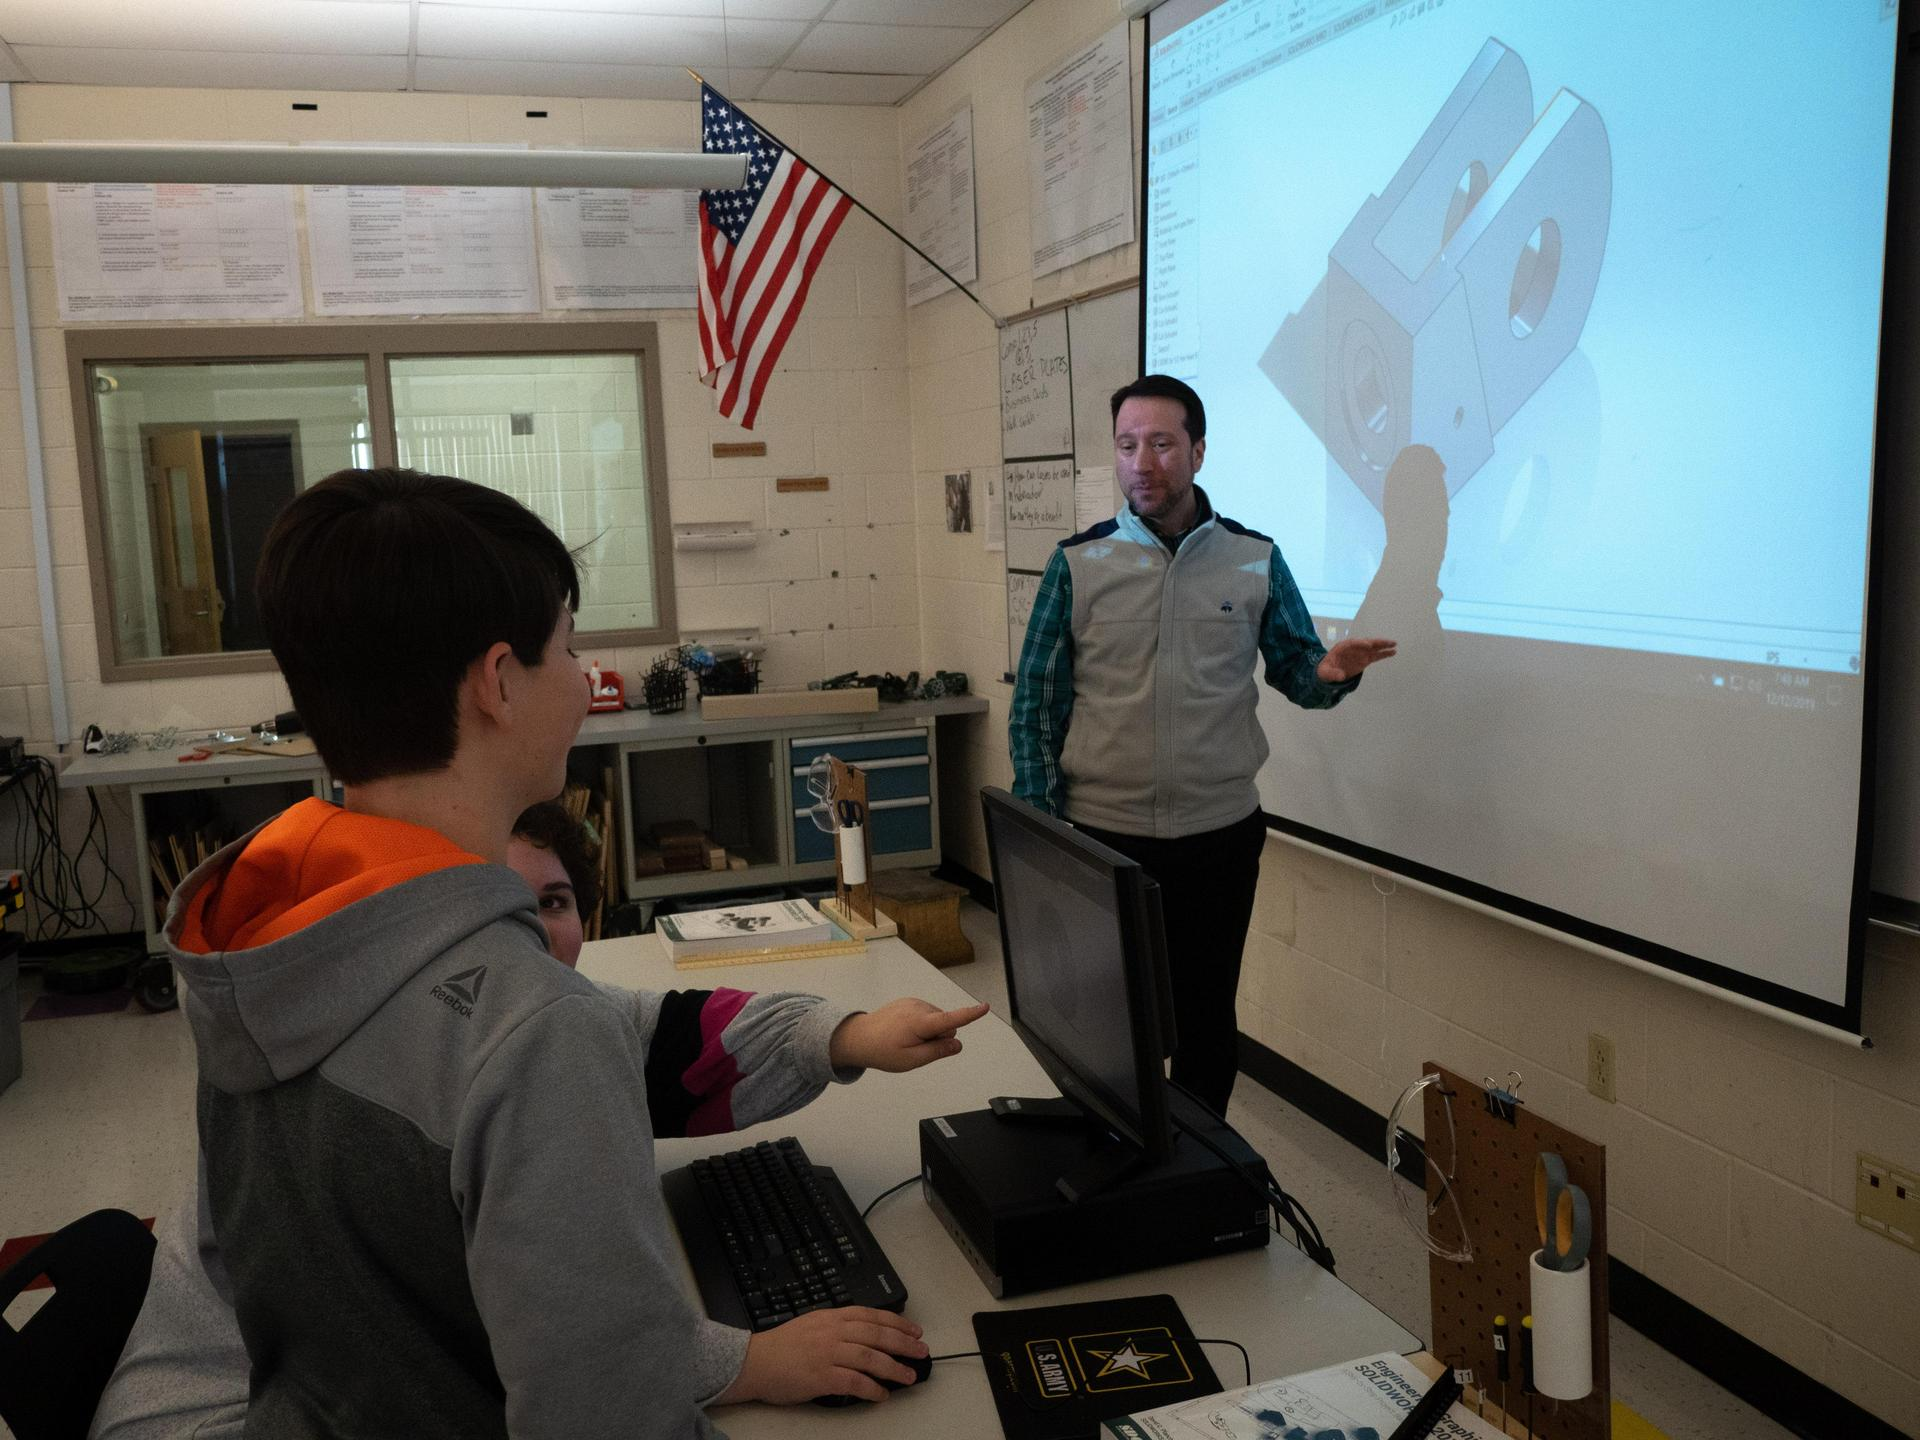 Mr. Xydias in front of projector screen showing a 3D model